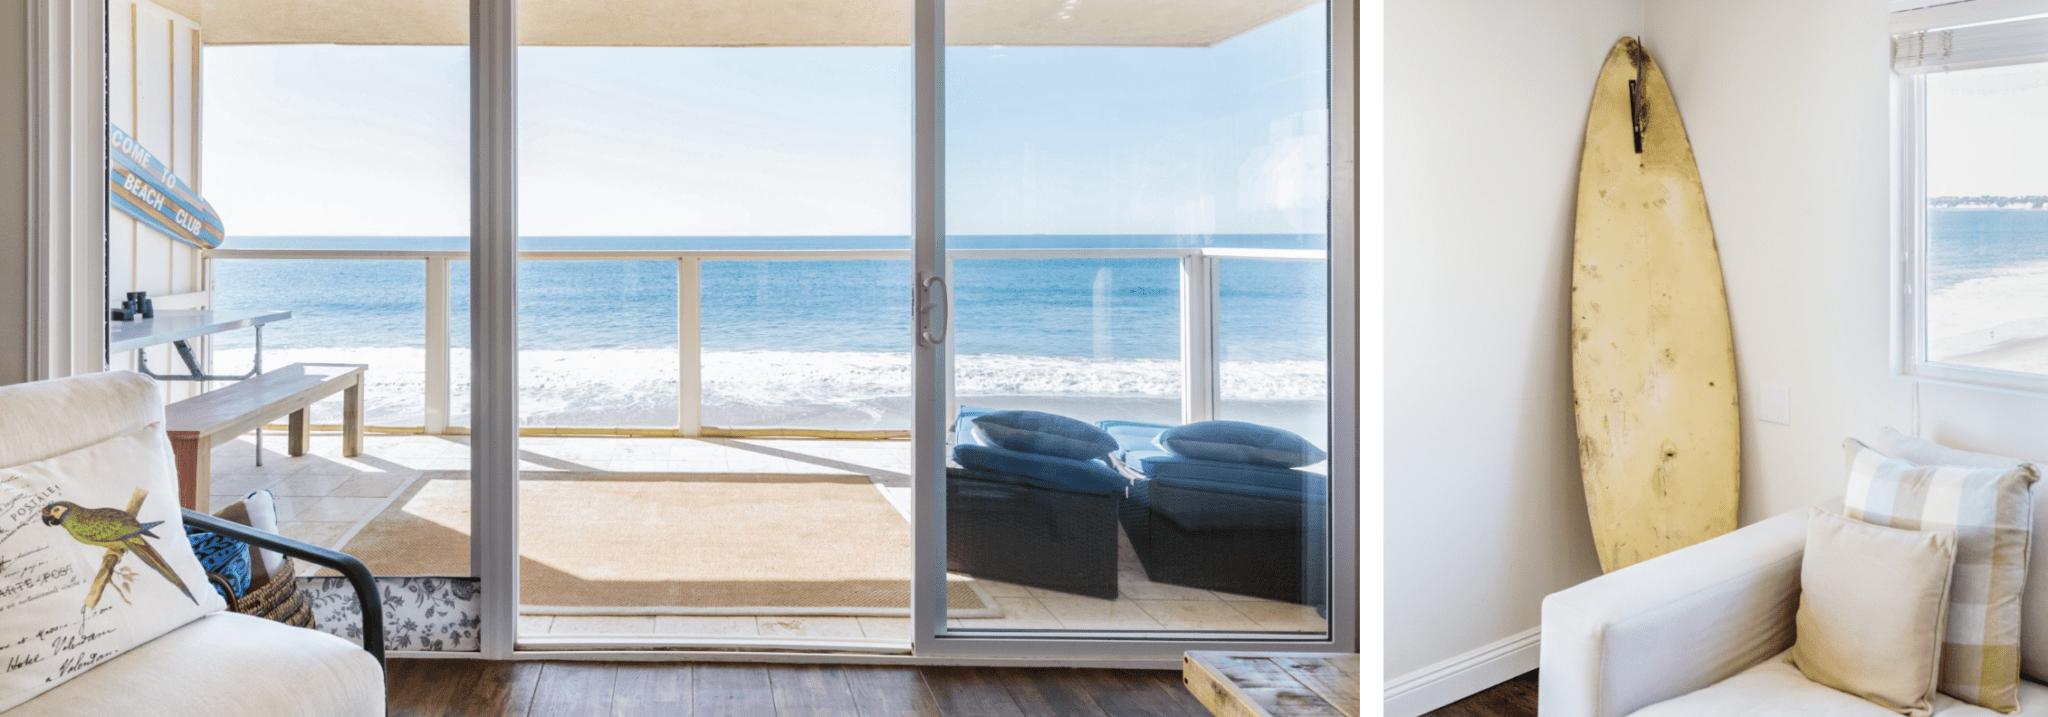 sea view with surfboard from Los Angeles Airbnb